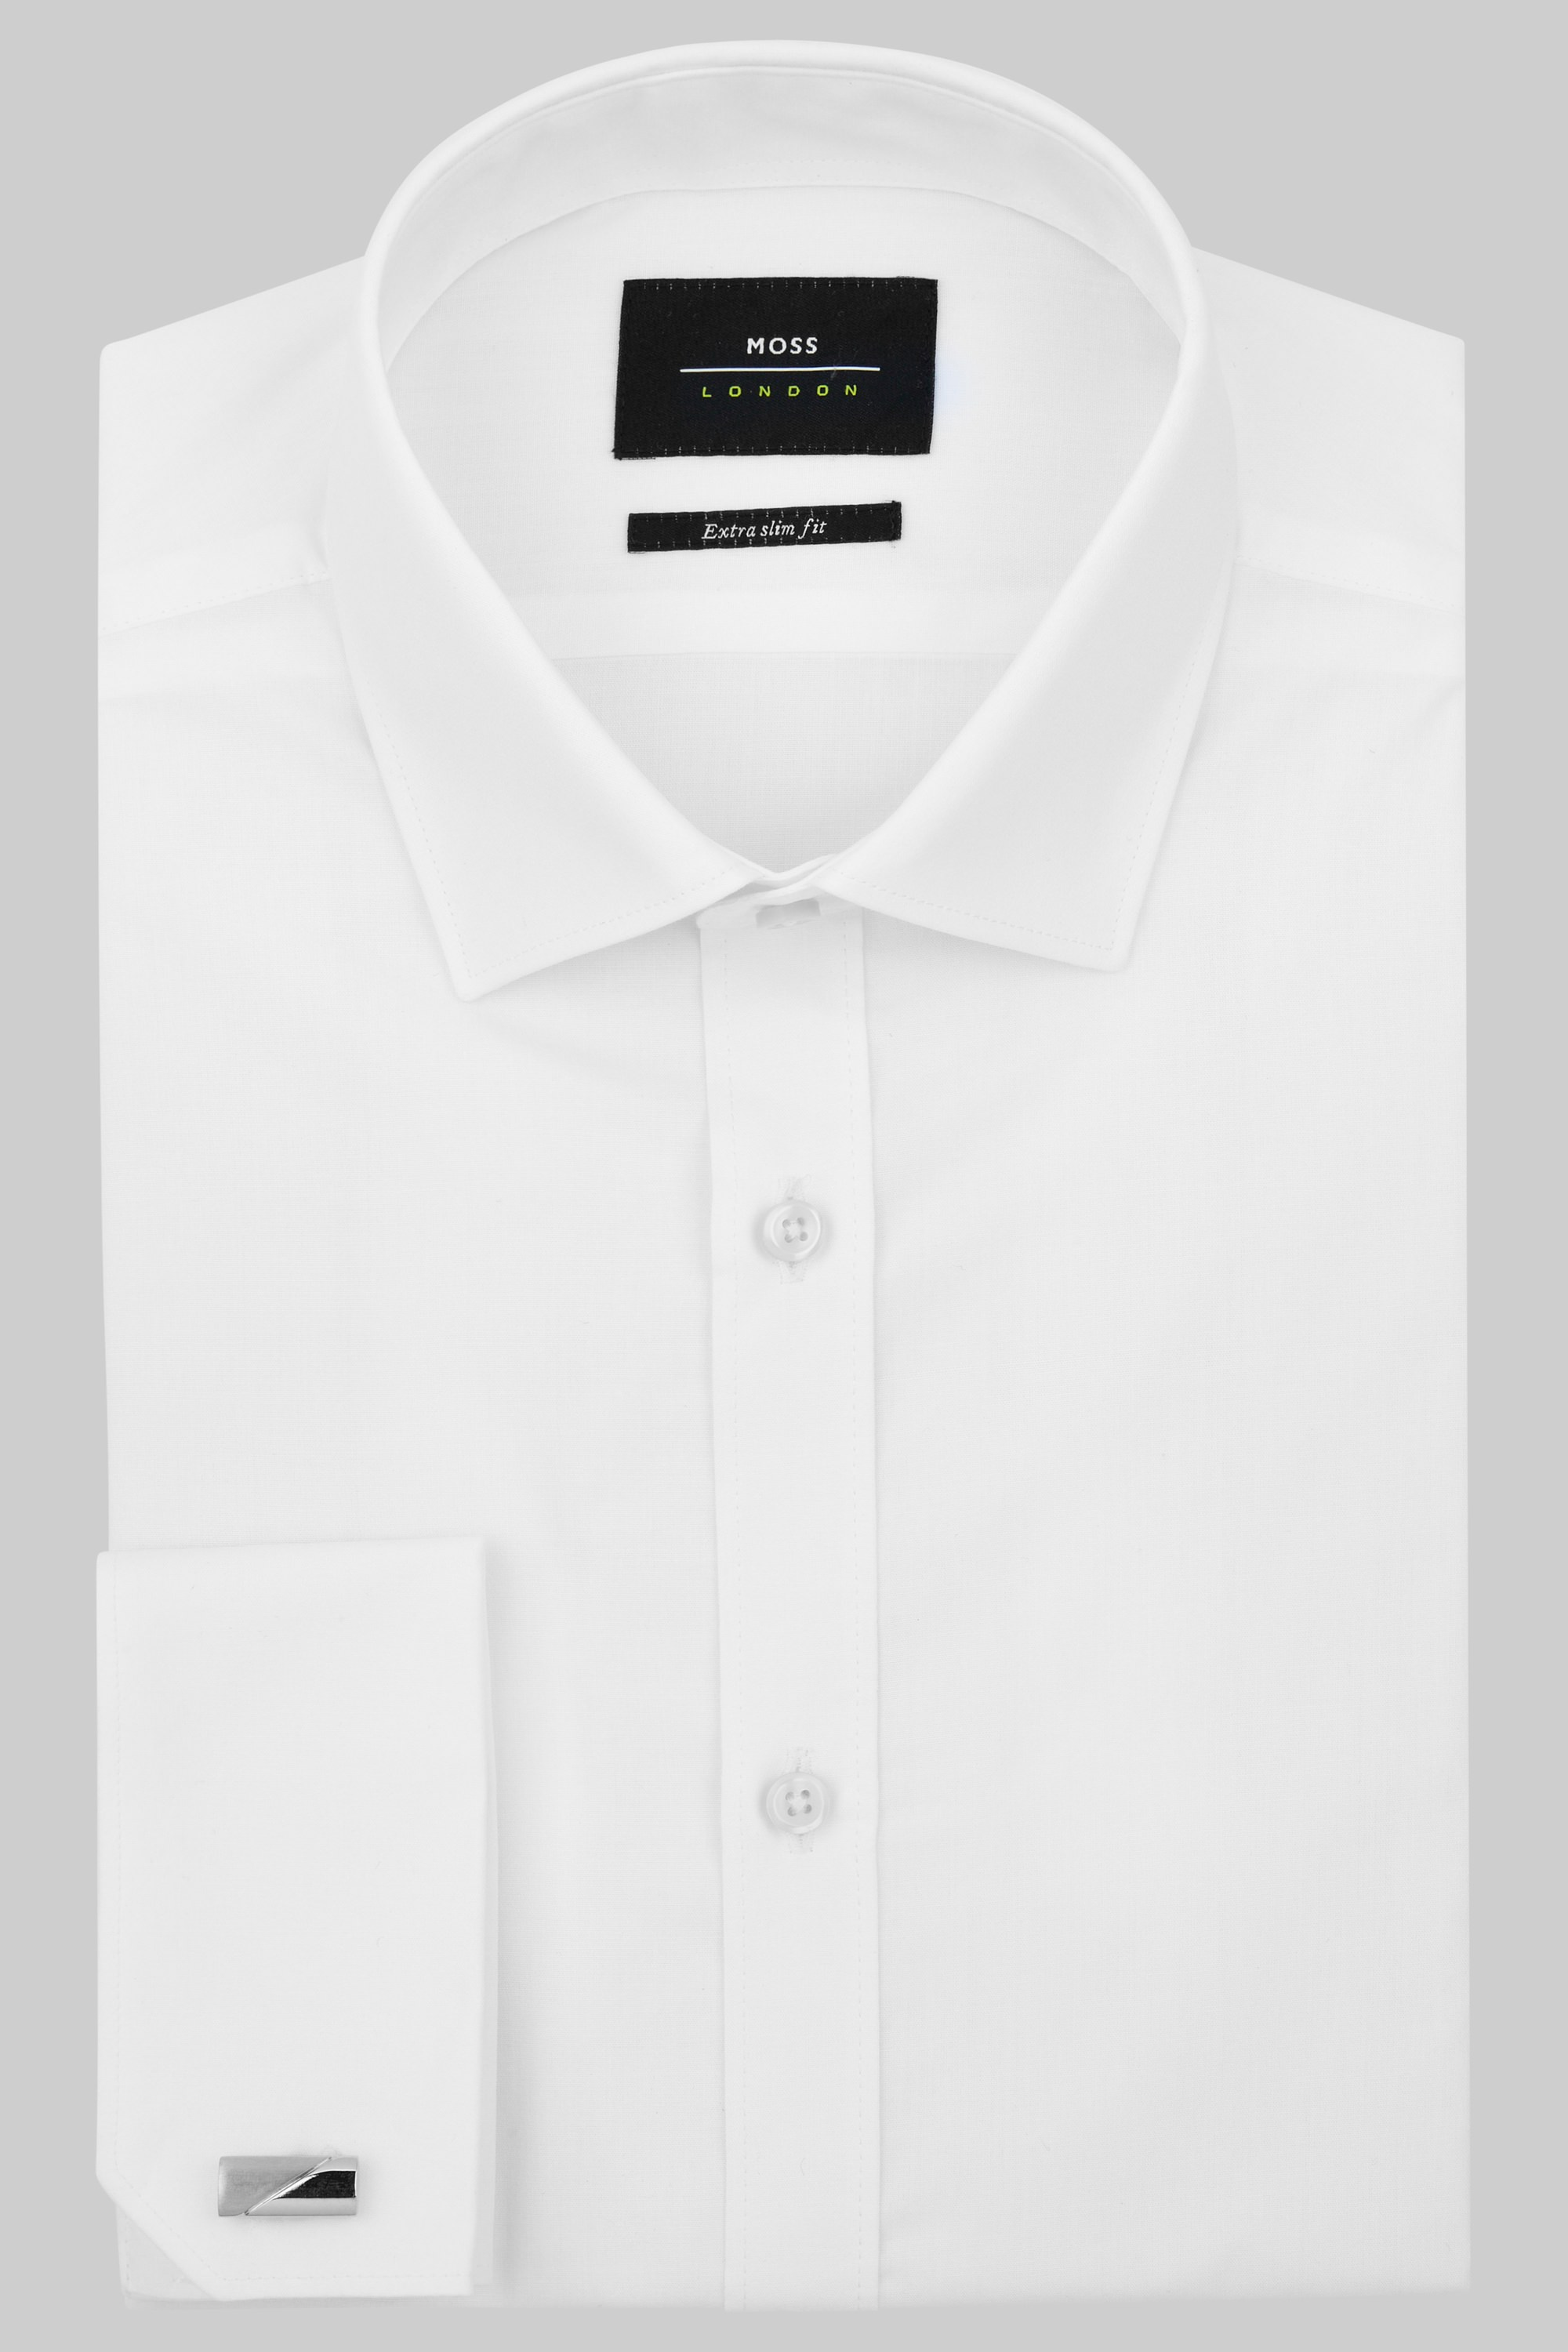 London Extra Slim Fit White Double Cuff Shirt